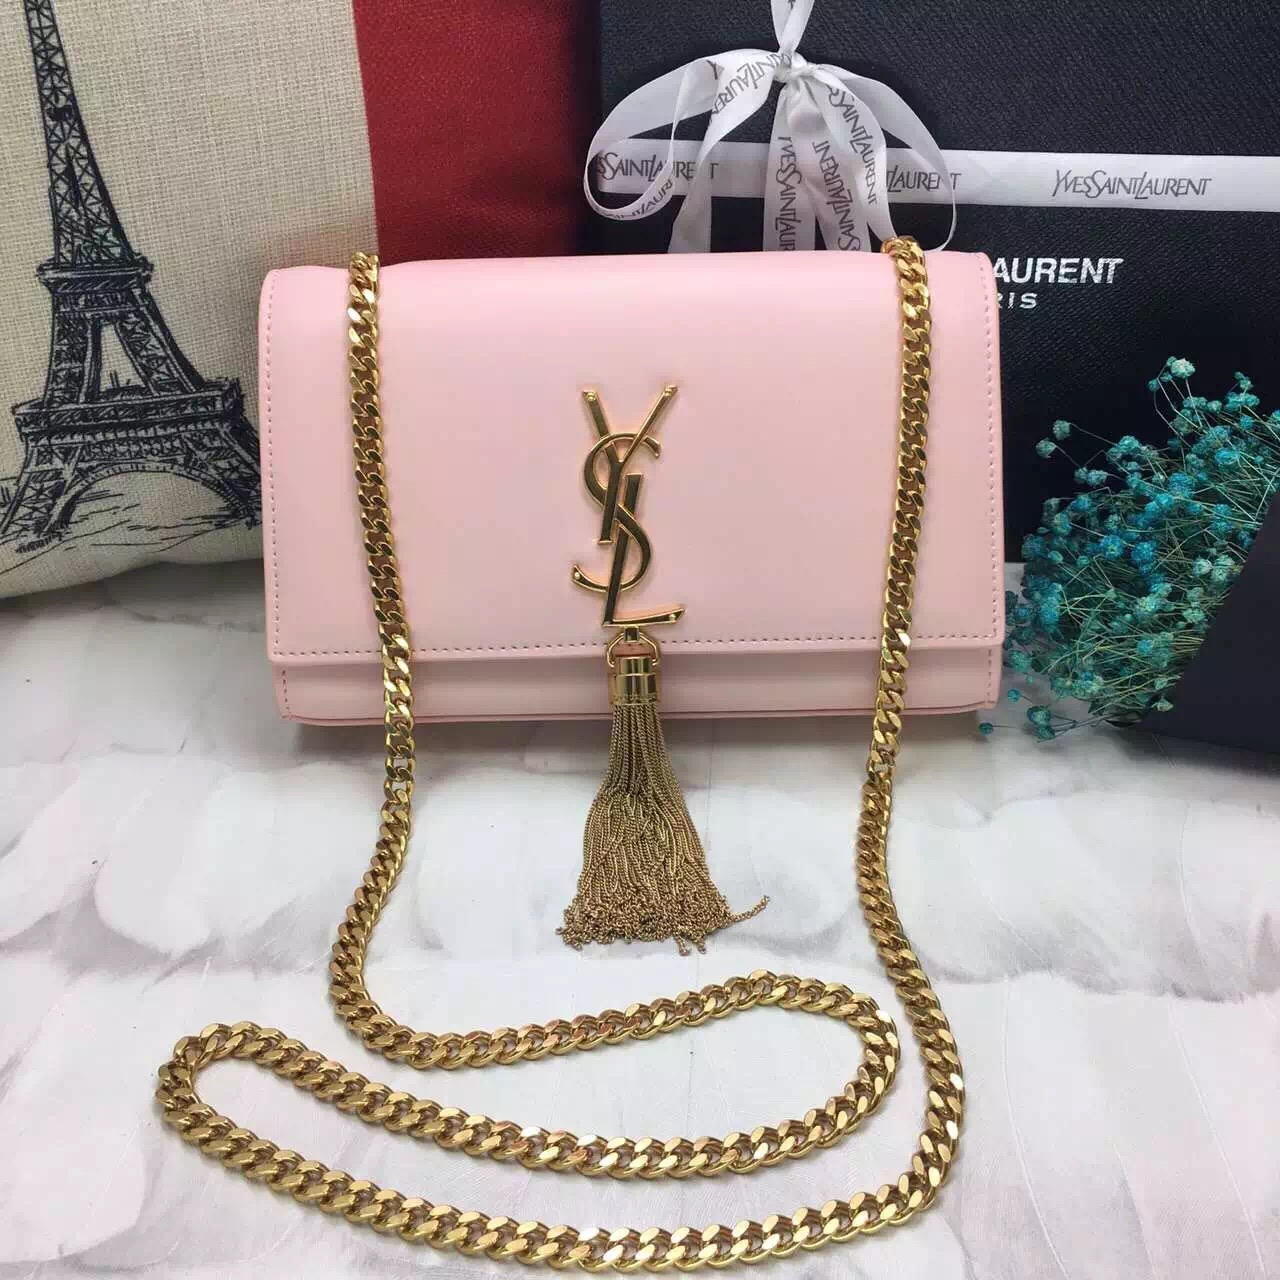 YSL Tassel Chain Bag 22cm Smooth Leather Light Pink Gold